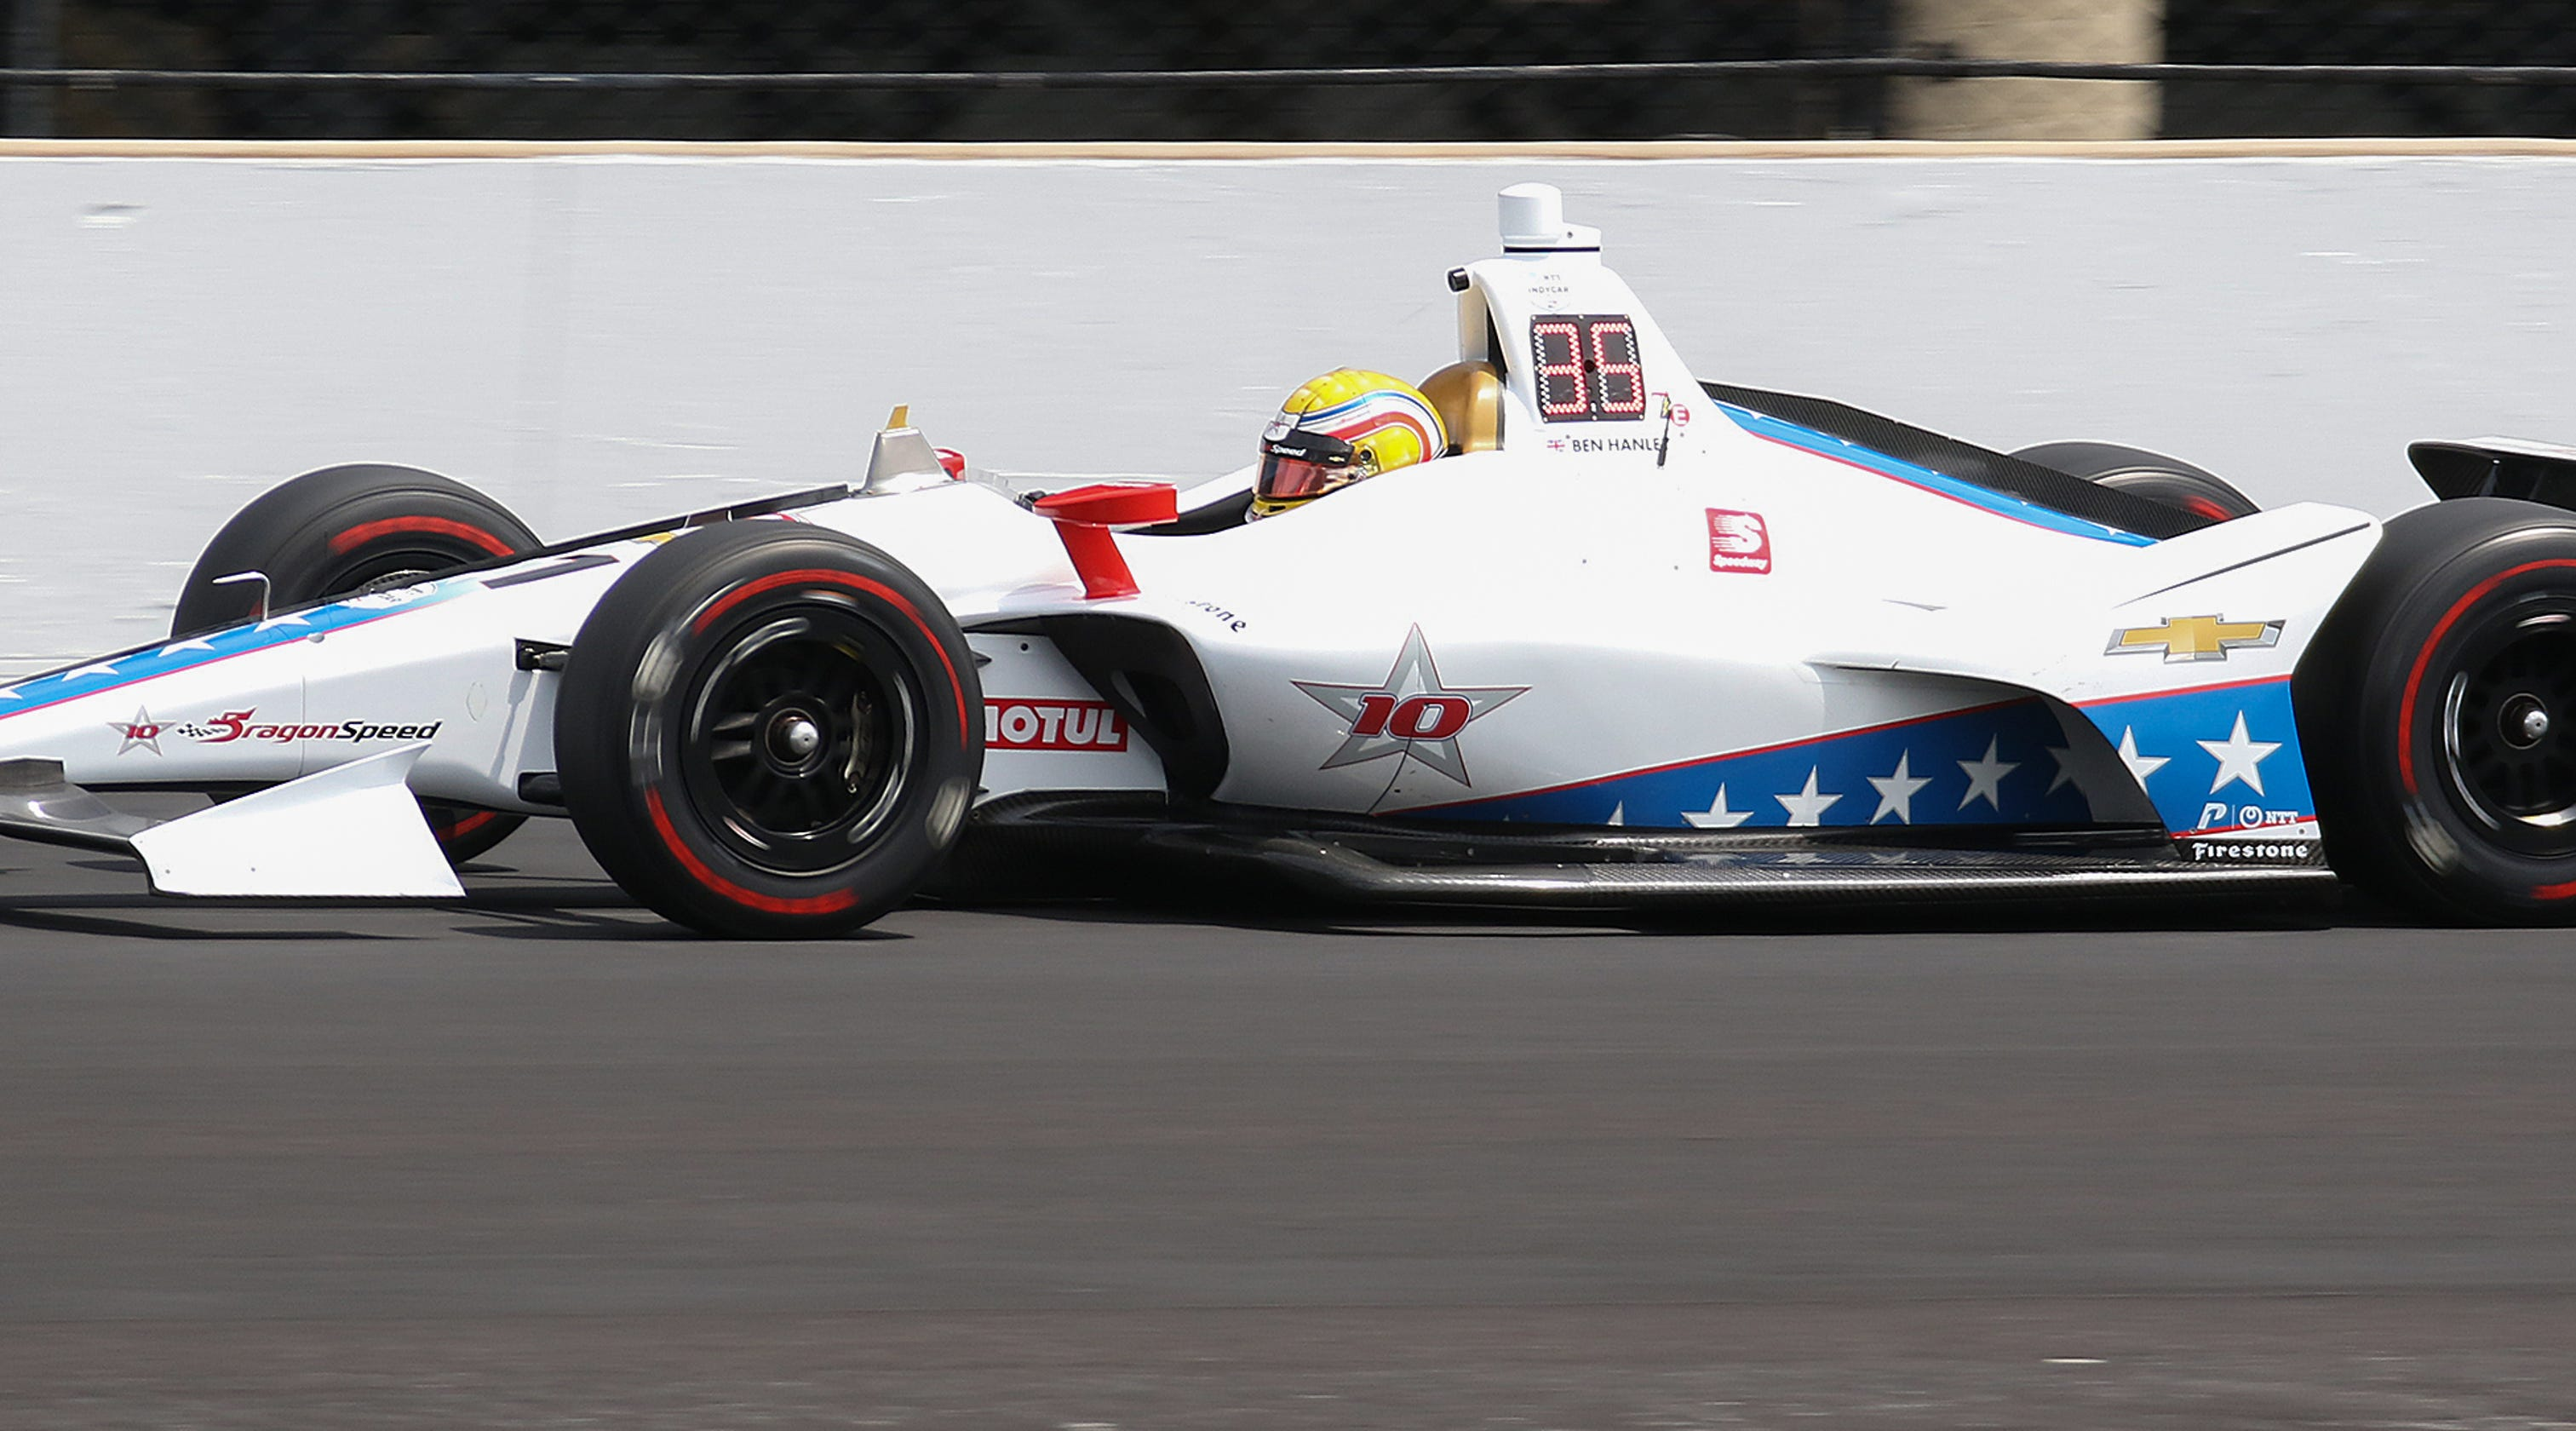 Indy Schedule 2020 DragonSpeed racing to 'focus its energies' on expanding 2020